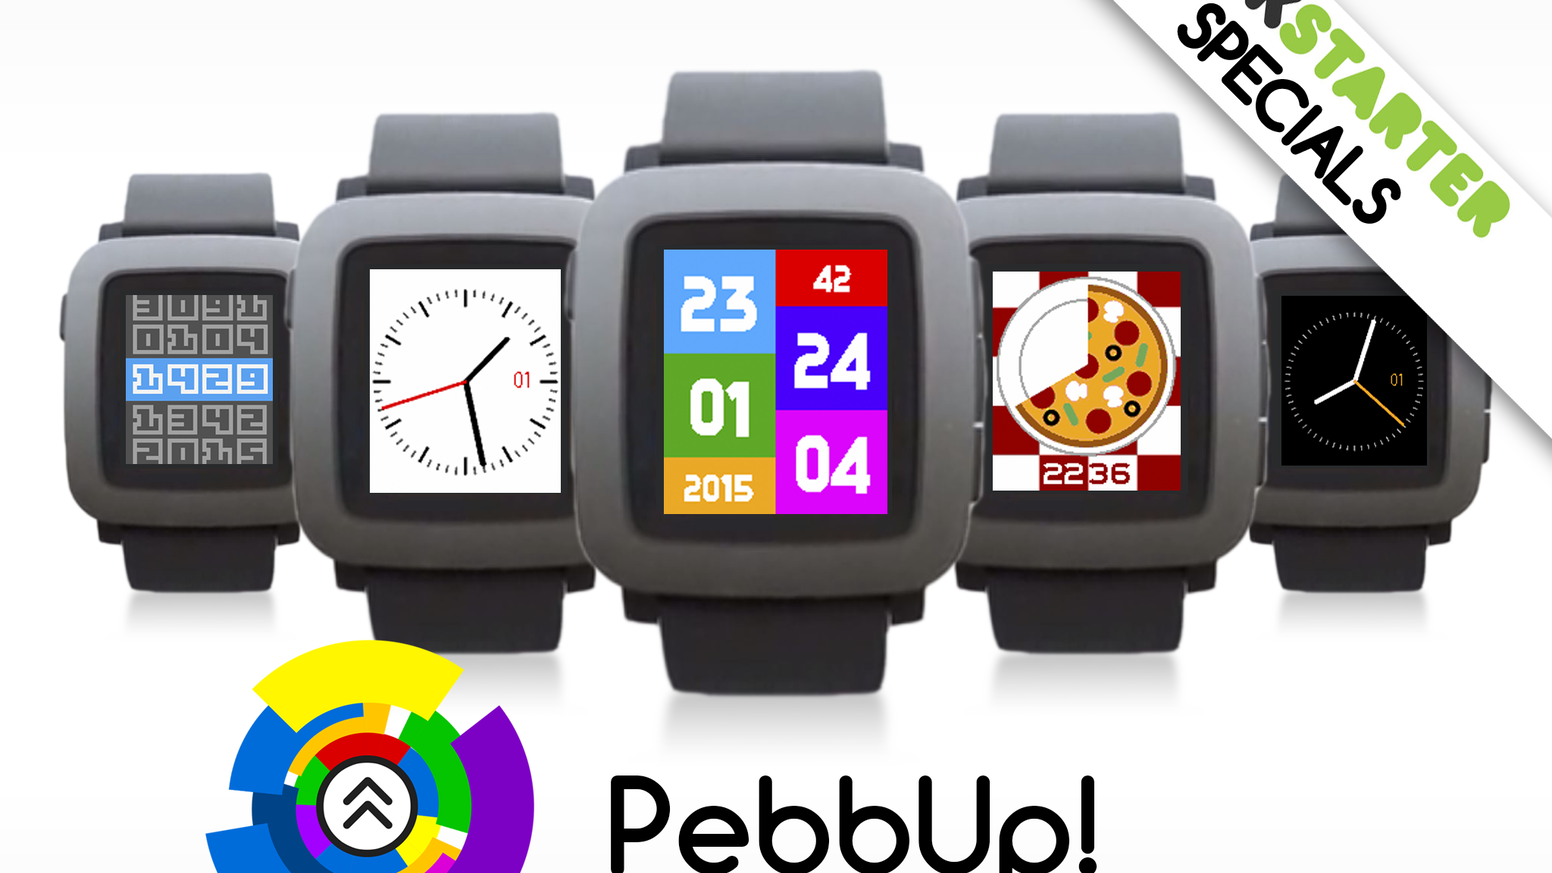 New colorful watchfaces for the new Pebble Time every month